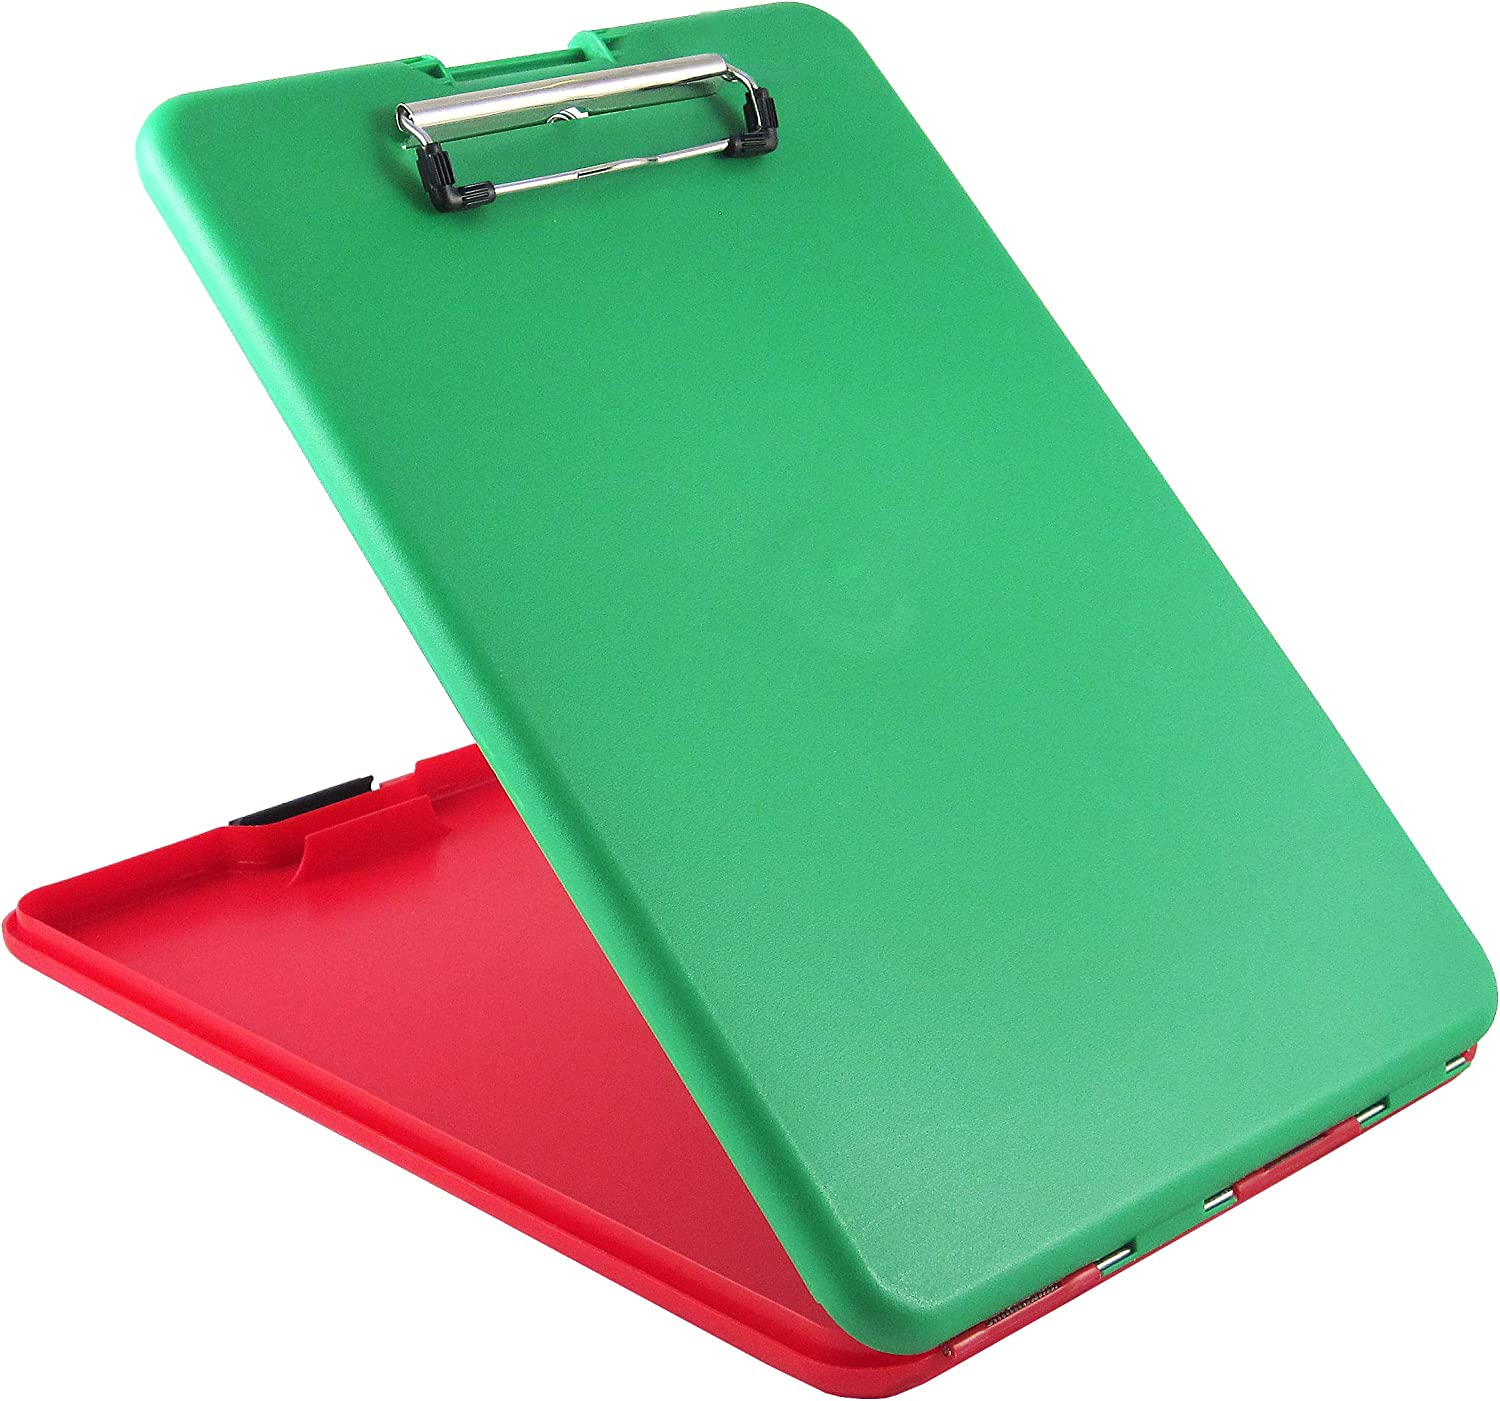 Saunders Red and Green Show2Know Safety Organizer Clipboard with Low Profile Clip for Drills and Emergenicies (00580)